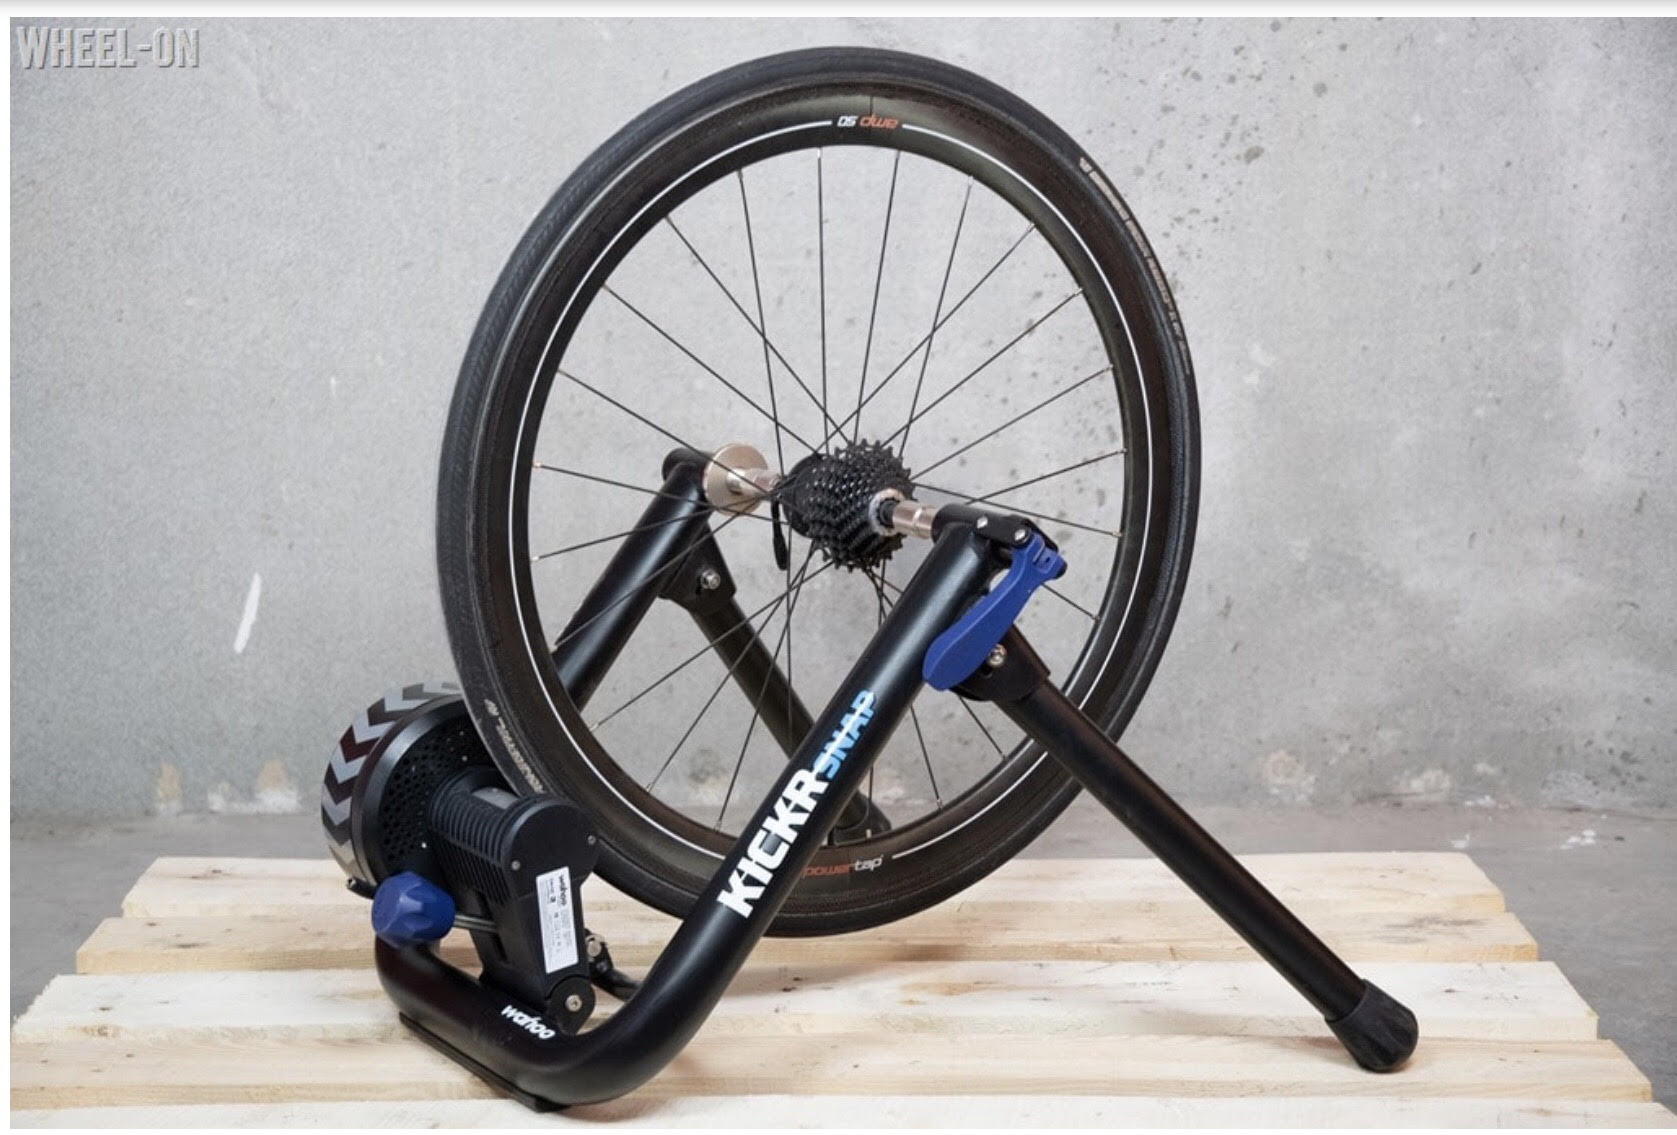 Wheel-on indoor bicycle trainer